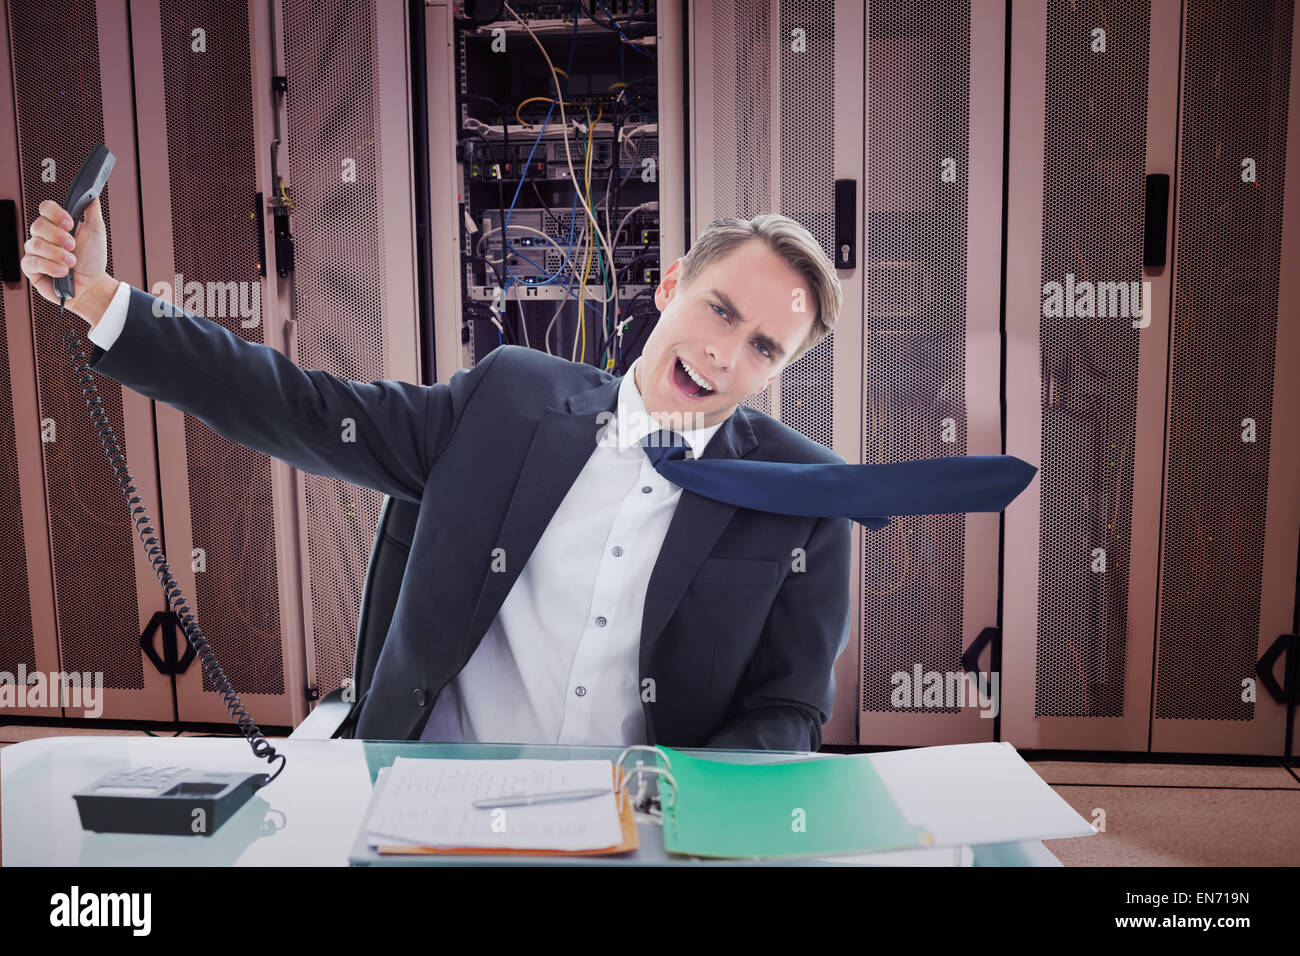 Composite image of businessman shouting as he holds out phone - Stock Image